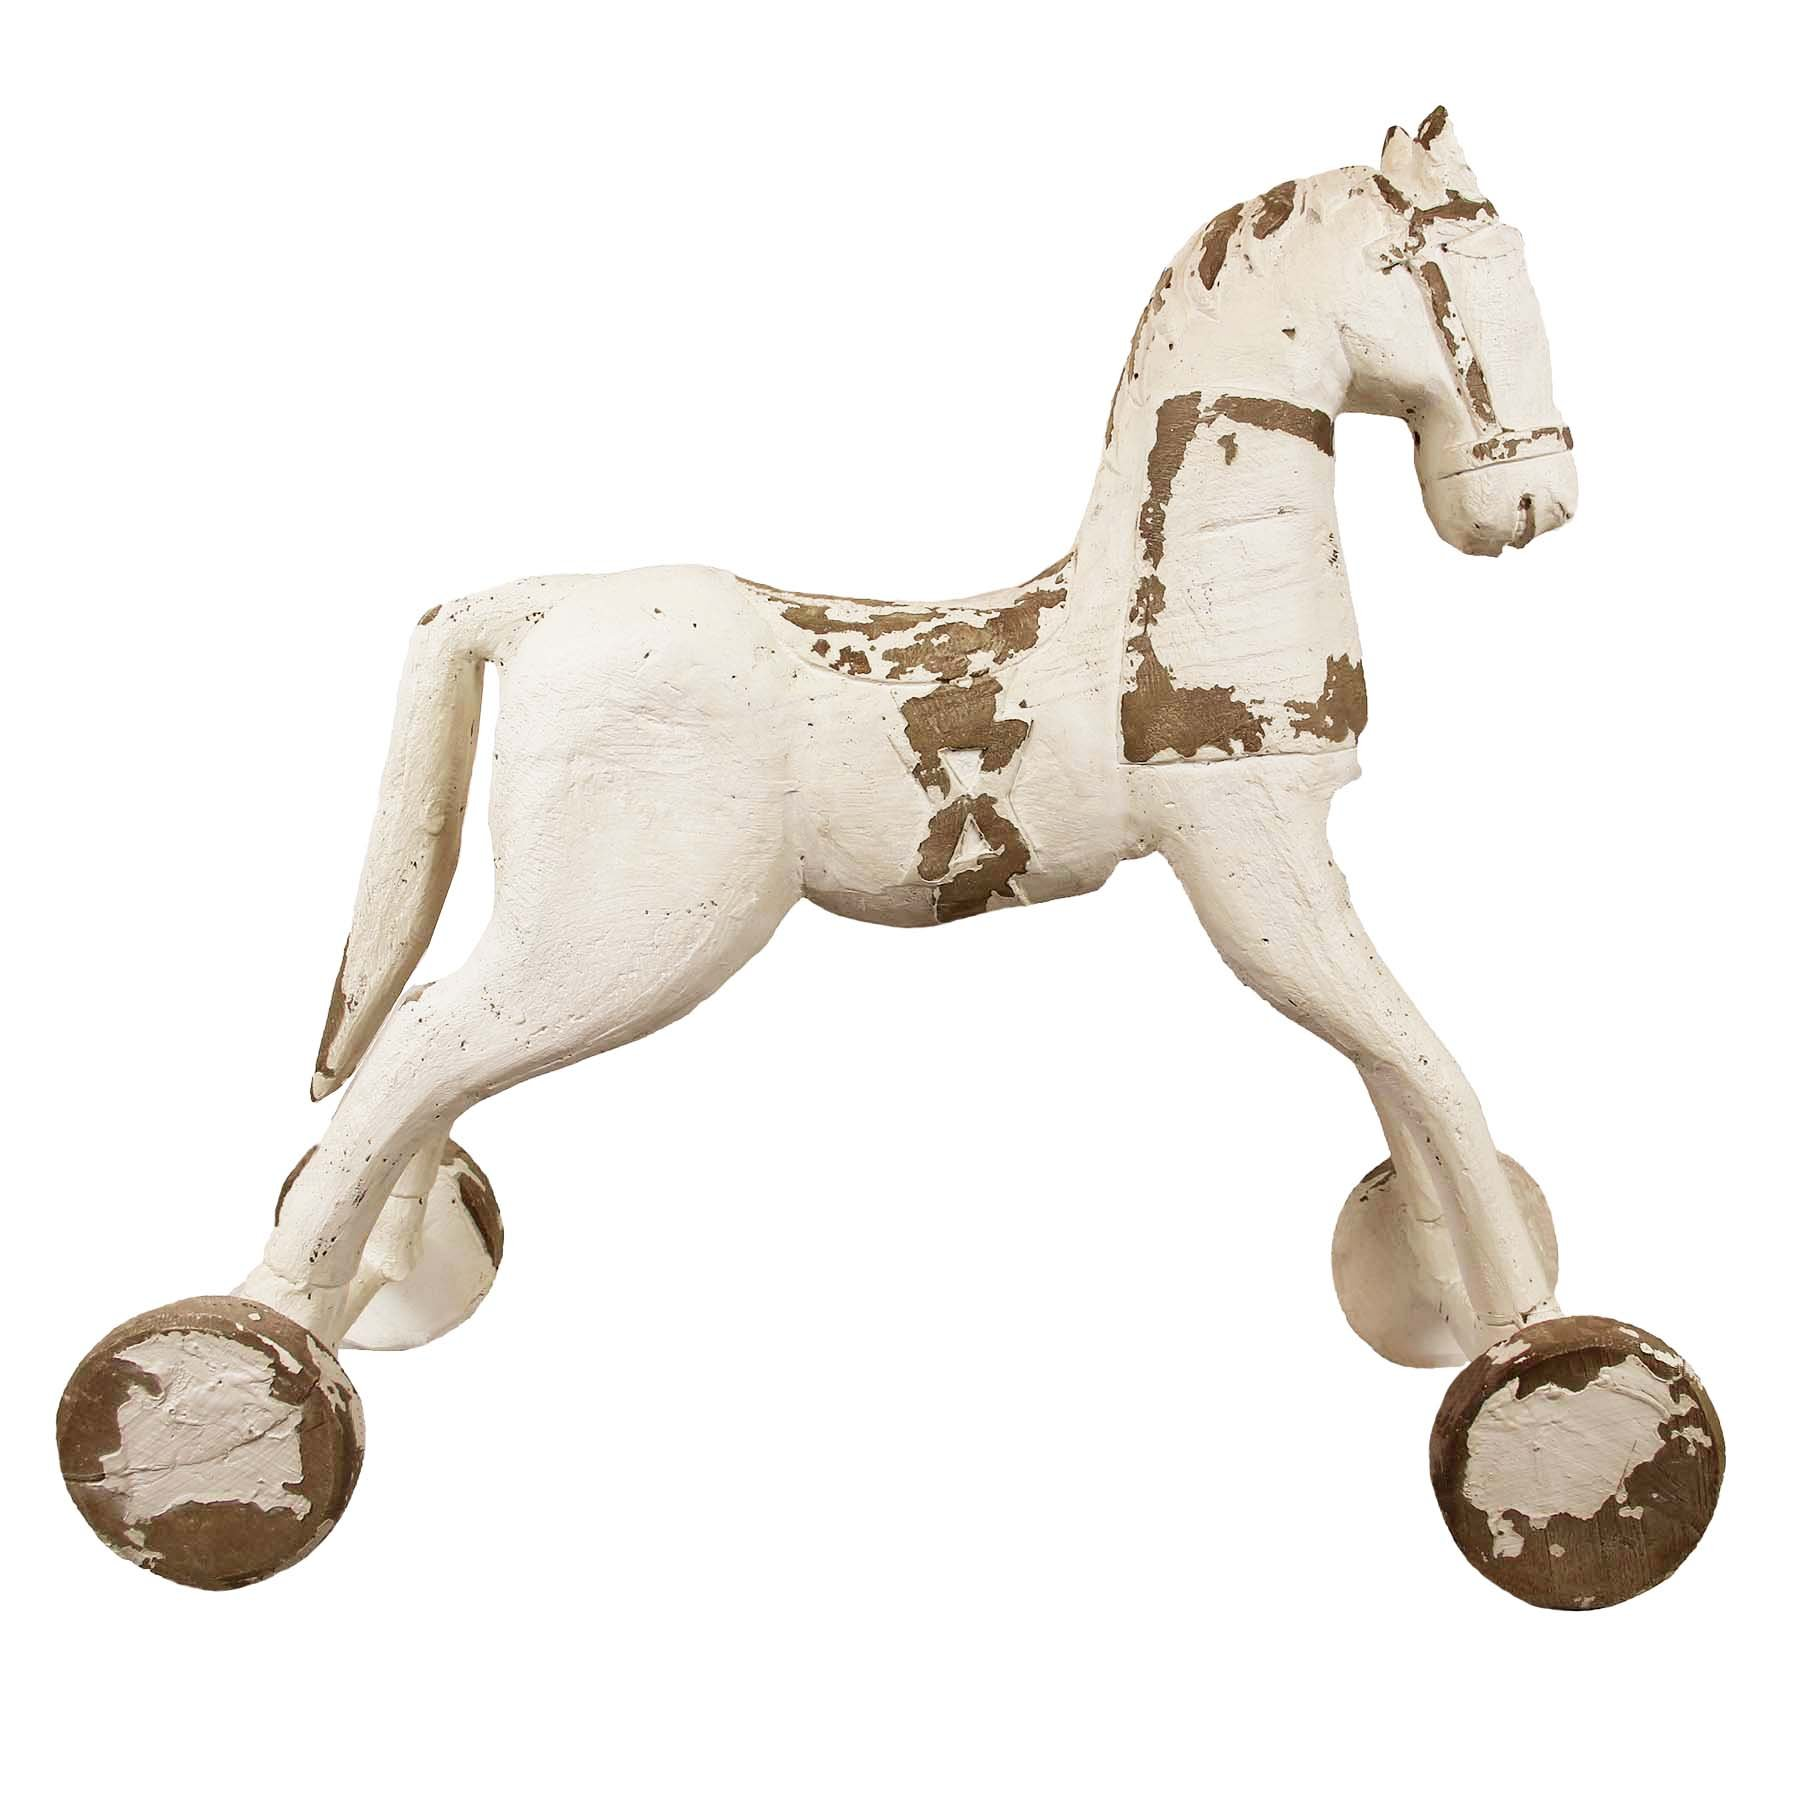 The Wildflower Company 530210 Vintage Rocking Horse Floor Decoration by The Wildflower Company